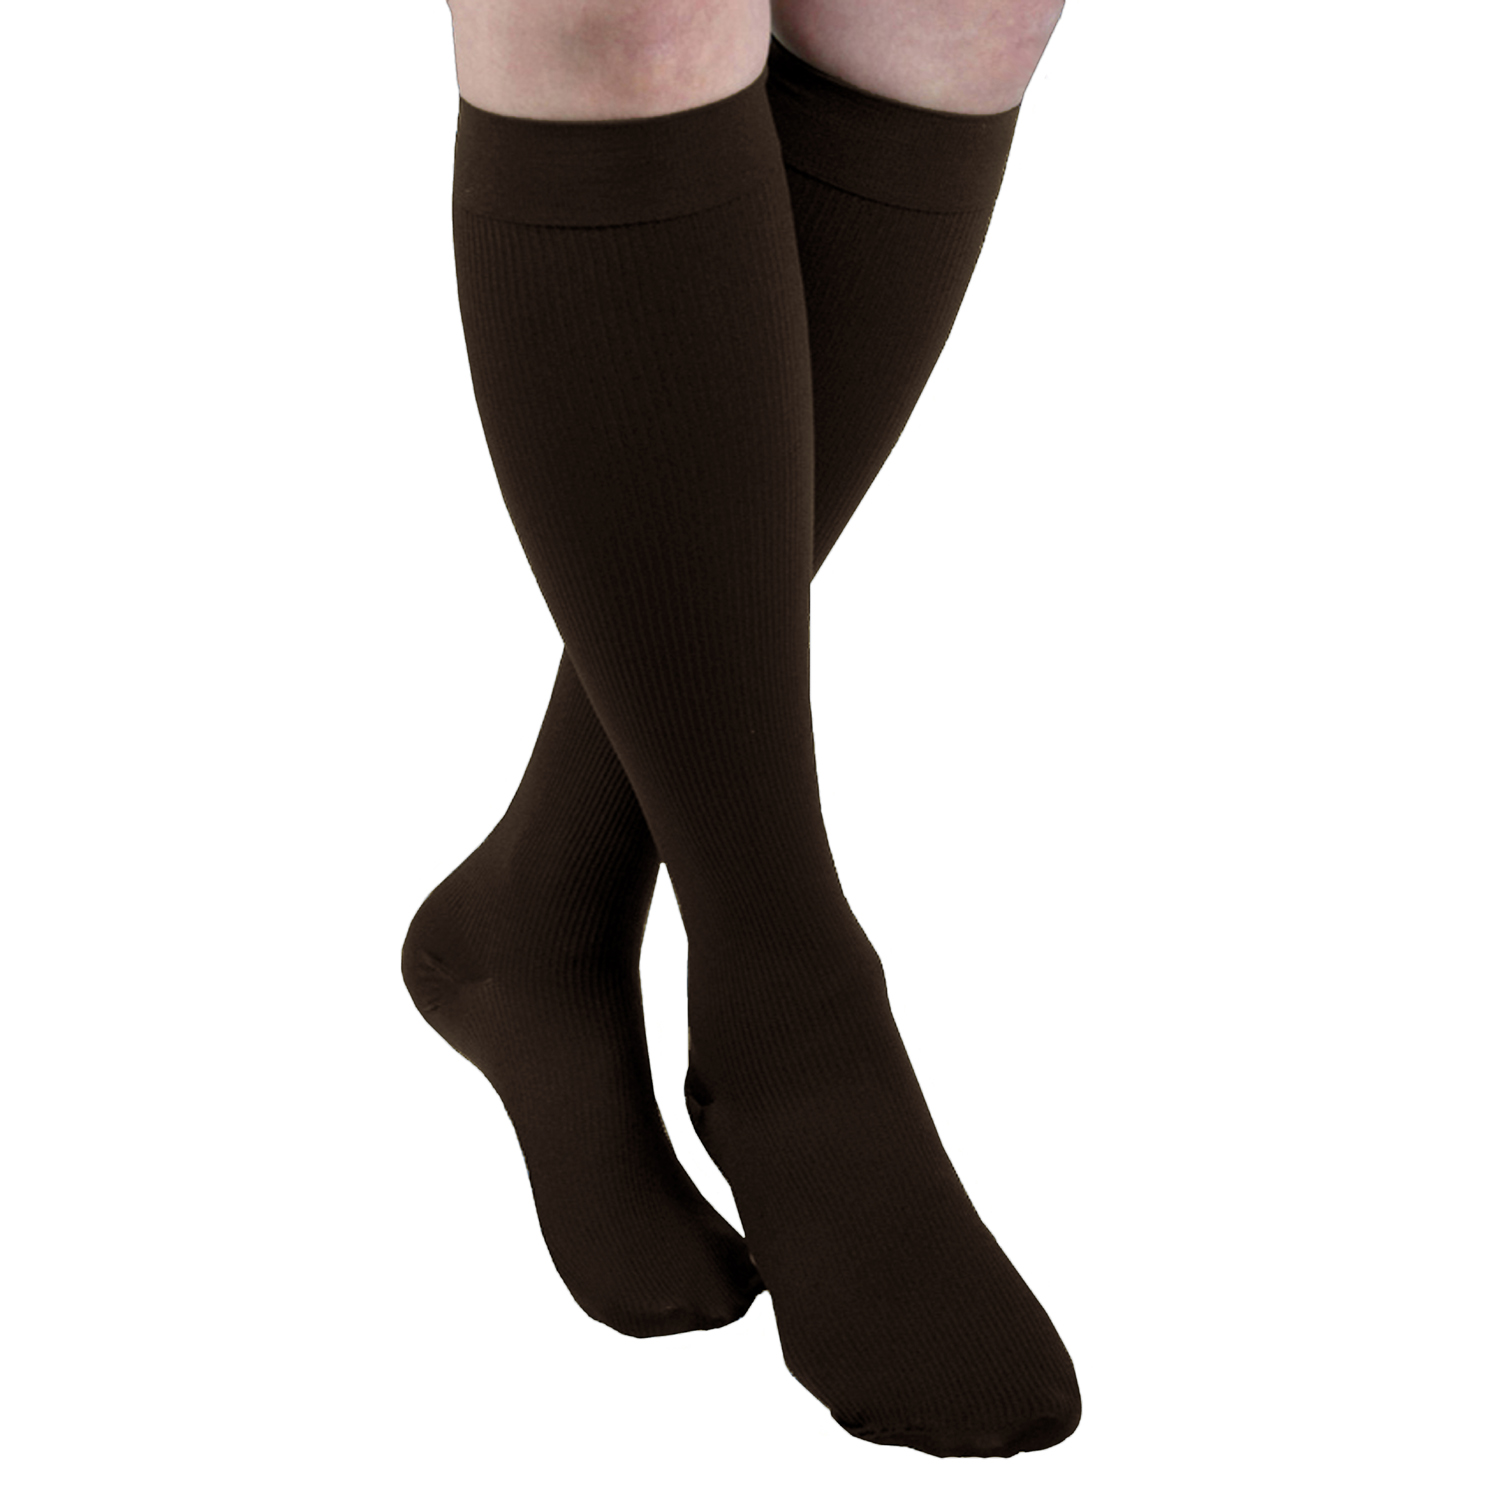 MAXAR Style H-1110 Men's Cotton Trouser Support Socks w/Band